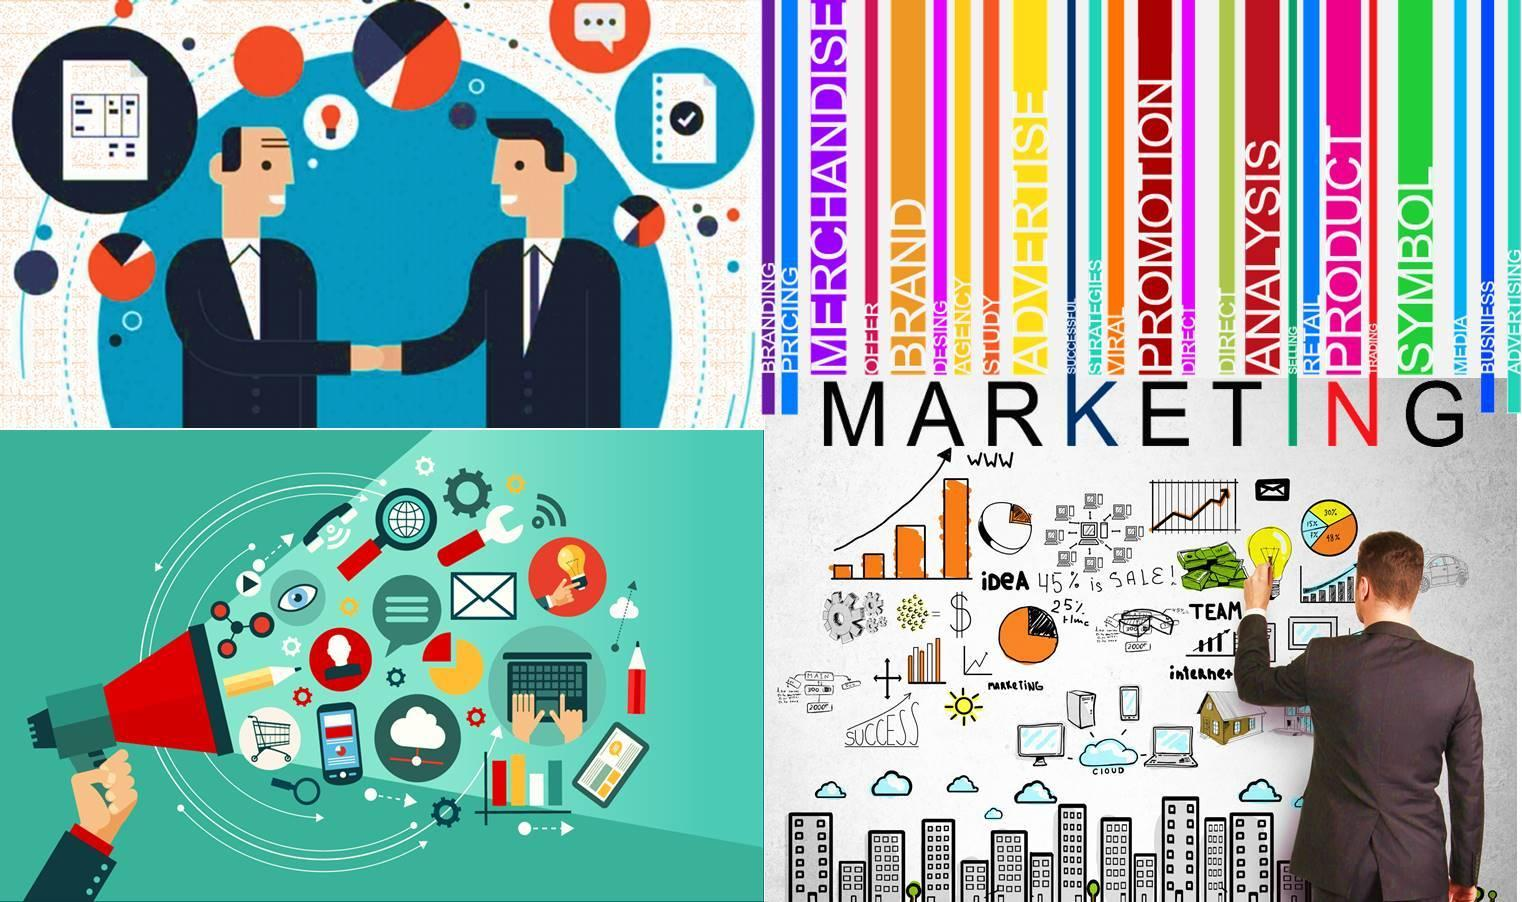 013 Marketing Project Topics Banner Healthcare Research Beautiful Paper Full